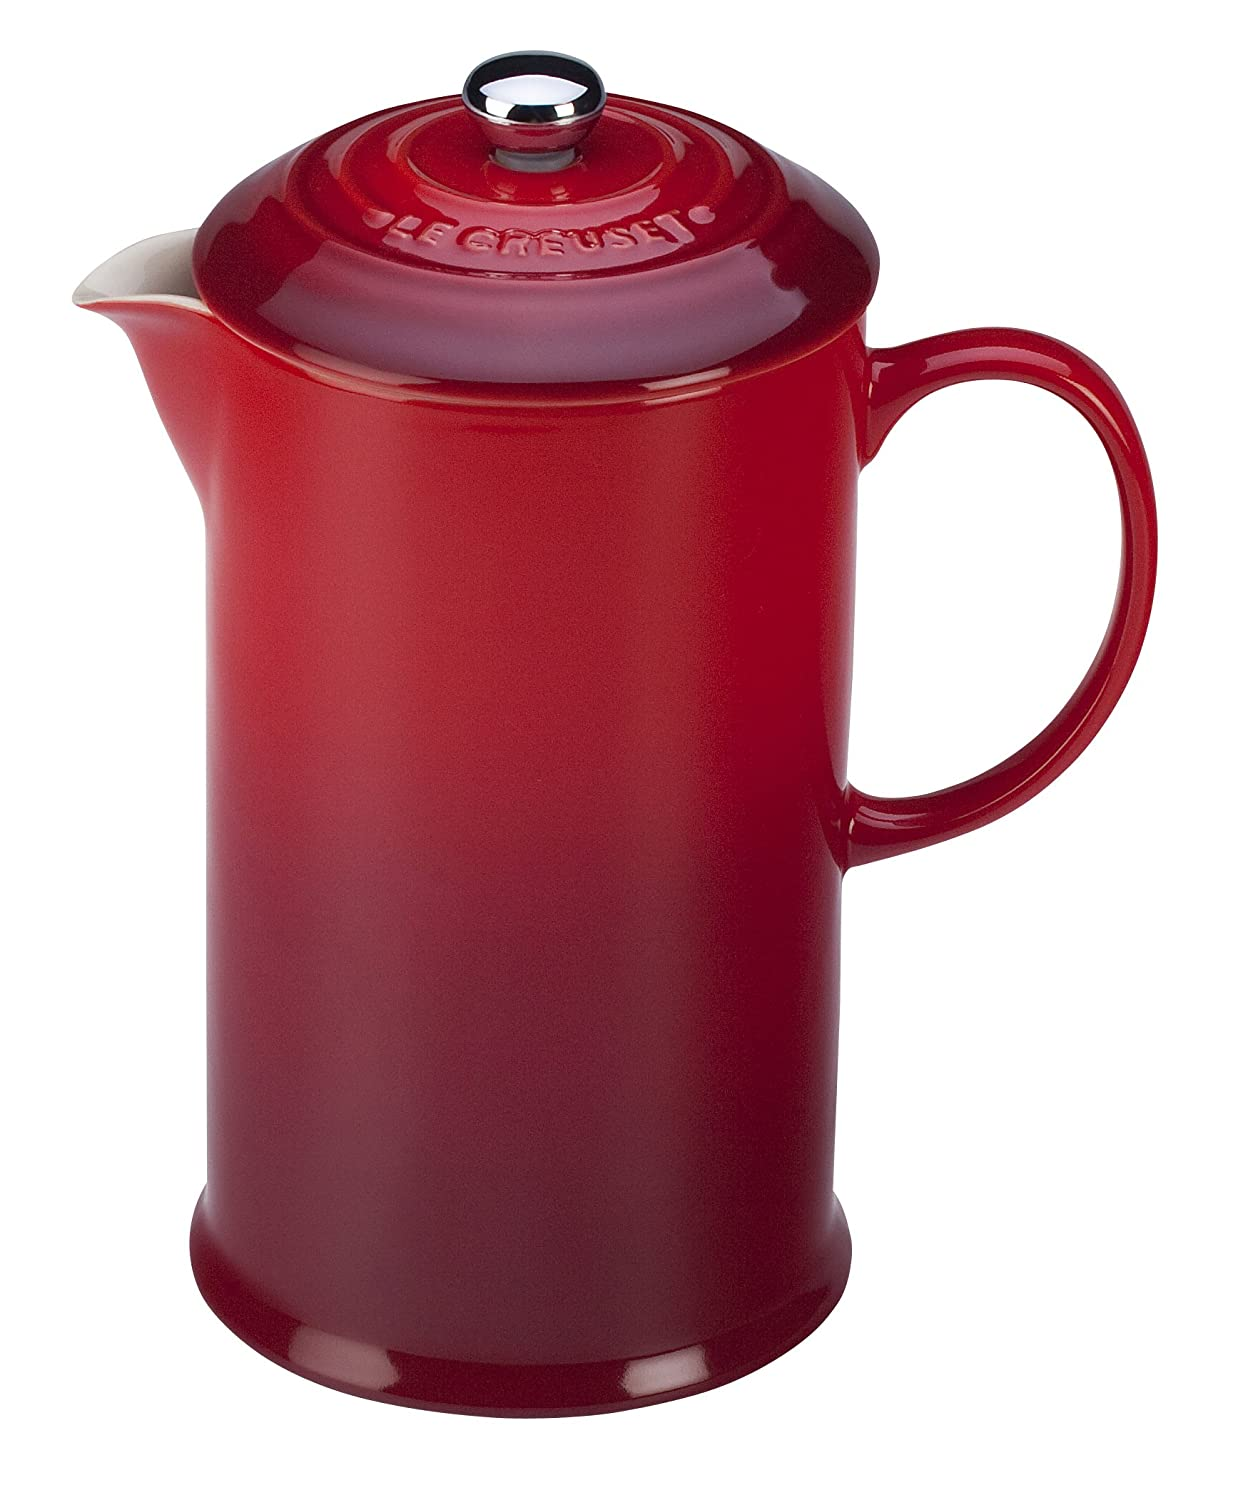 Le Creuset of America PG8200-0567 Petite French Press, 12 oz, Cherry